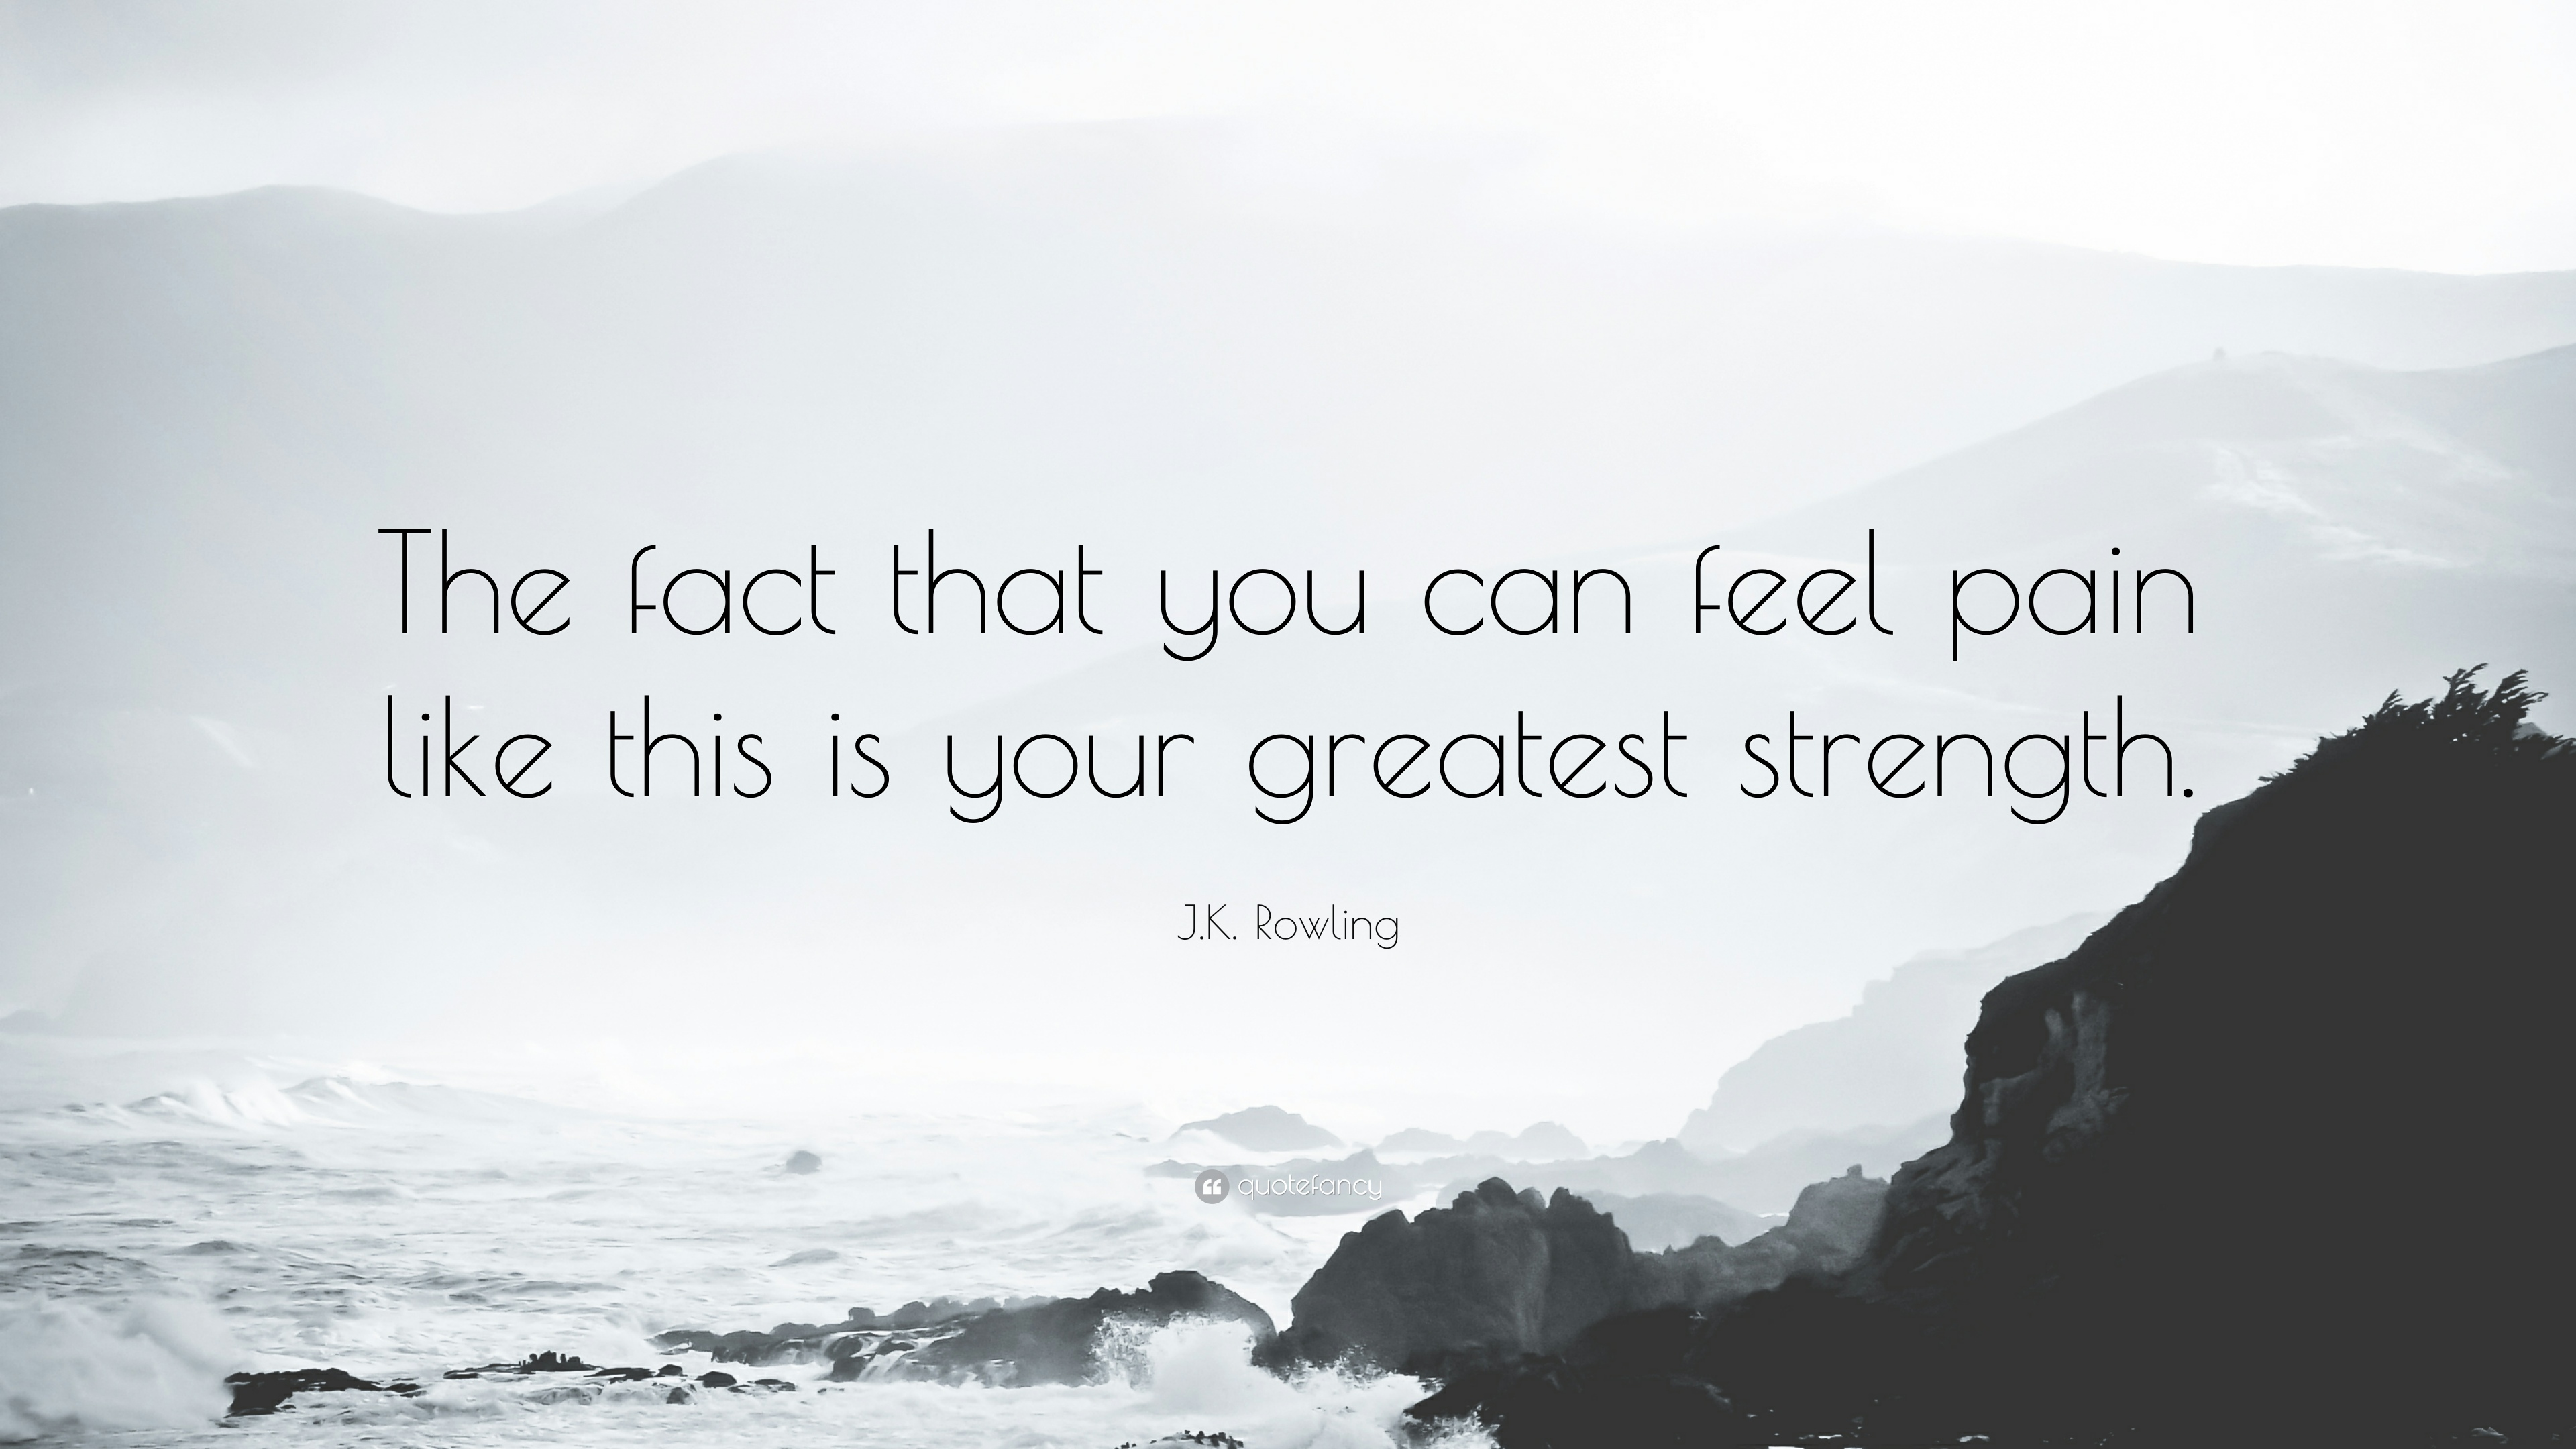 j k rowling quote the fact that you can feel pain like this is j k rowling quote the fact that you can feel pain like this is your